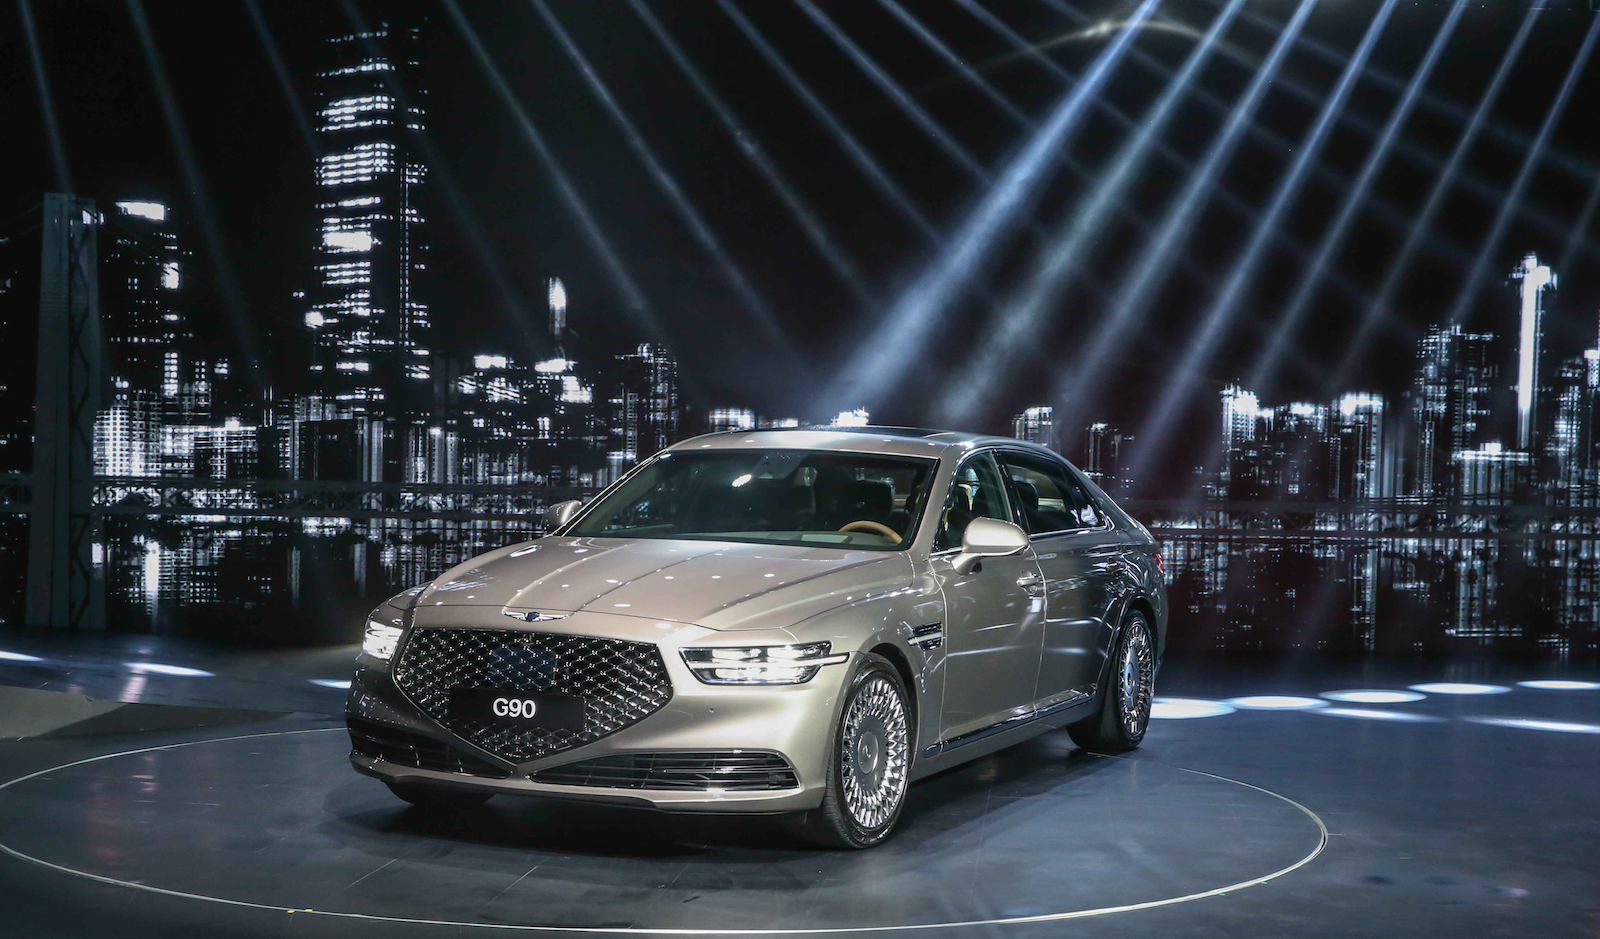 2019 Genesis G90 Gets A Radical Restyling 187 Autoguide Com News